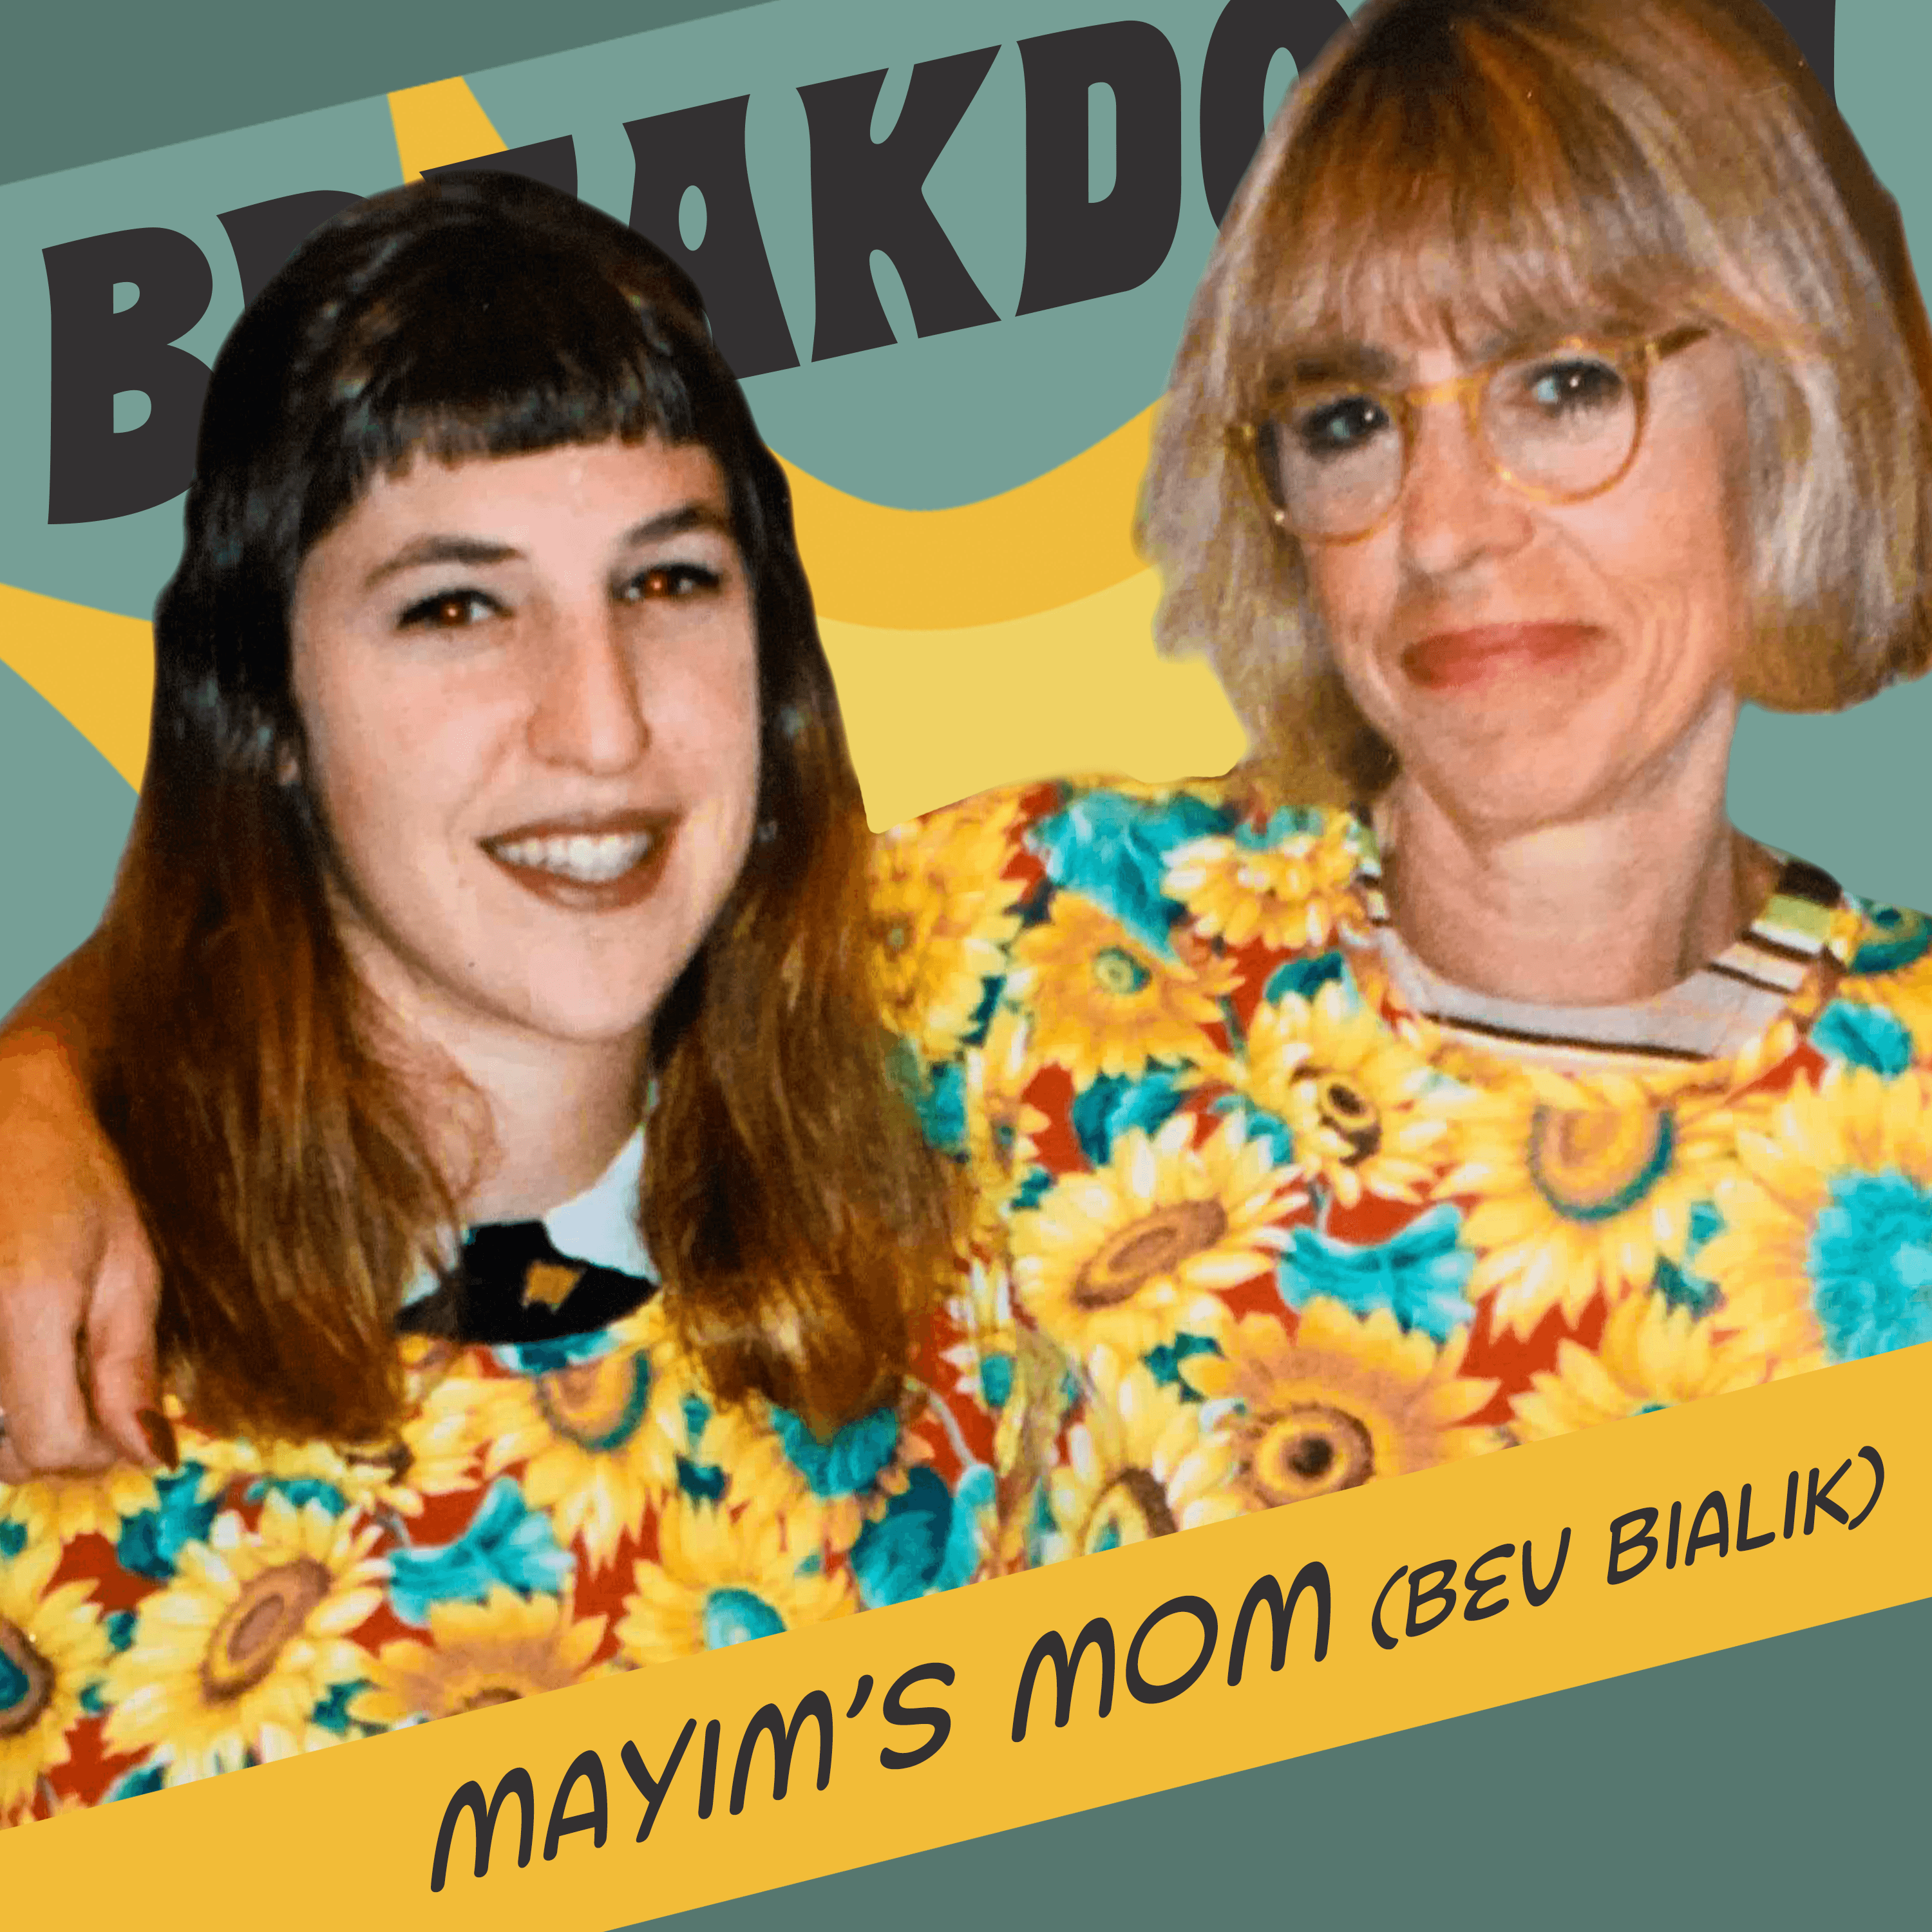 Bevisode with Mayim's Mom! Mysticism & Motherhood, Hungarian Superpowers & Pioneering Prison Programs